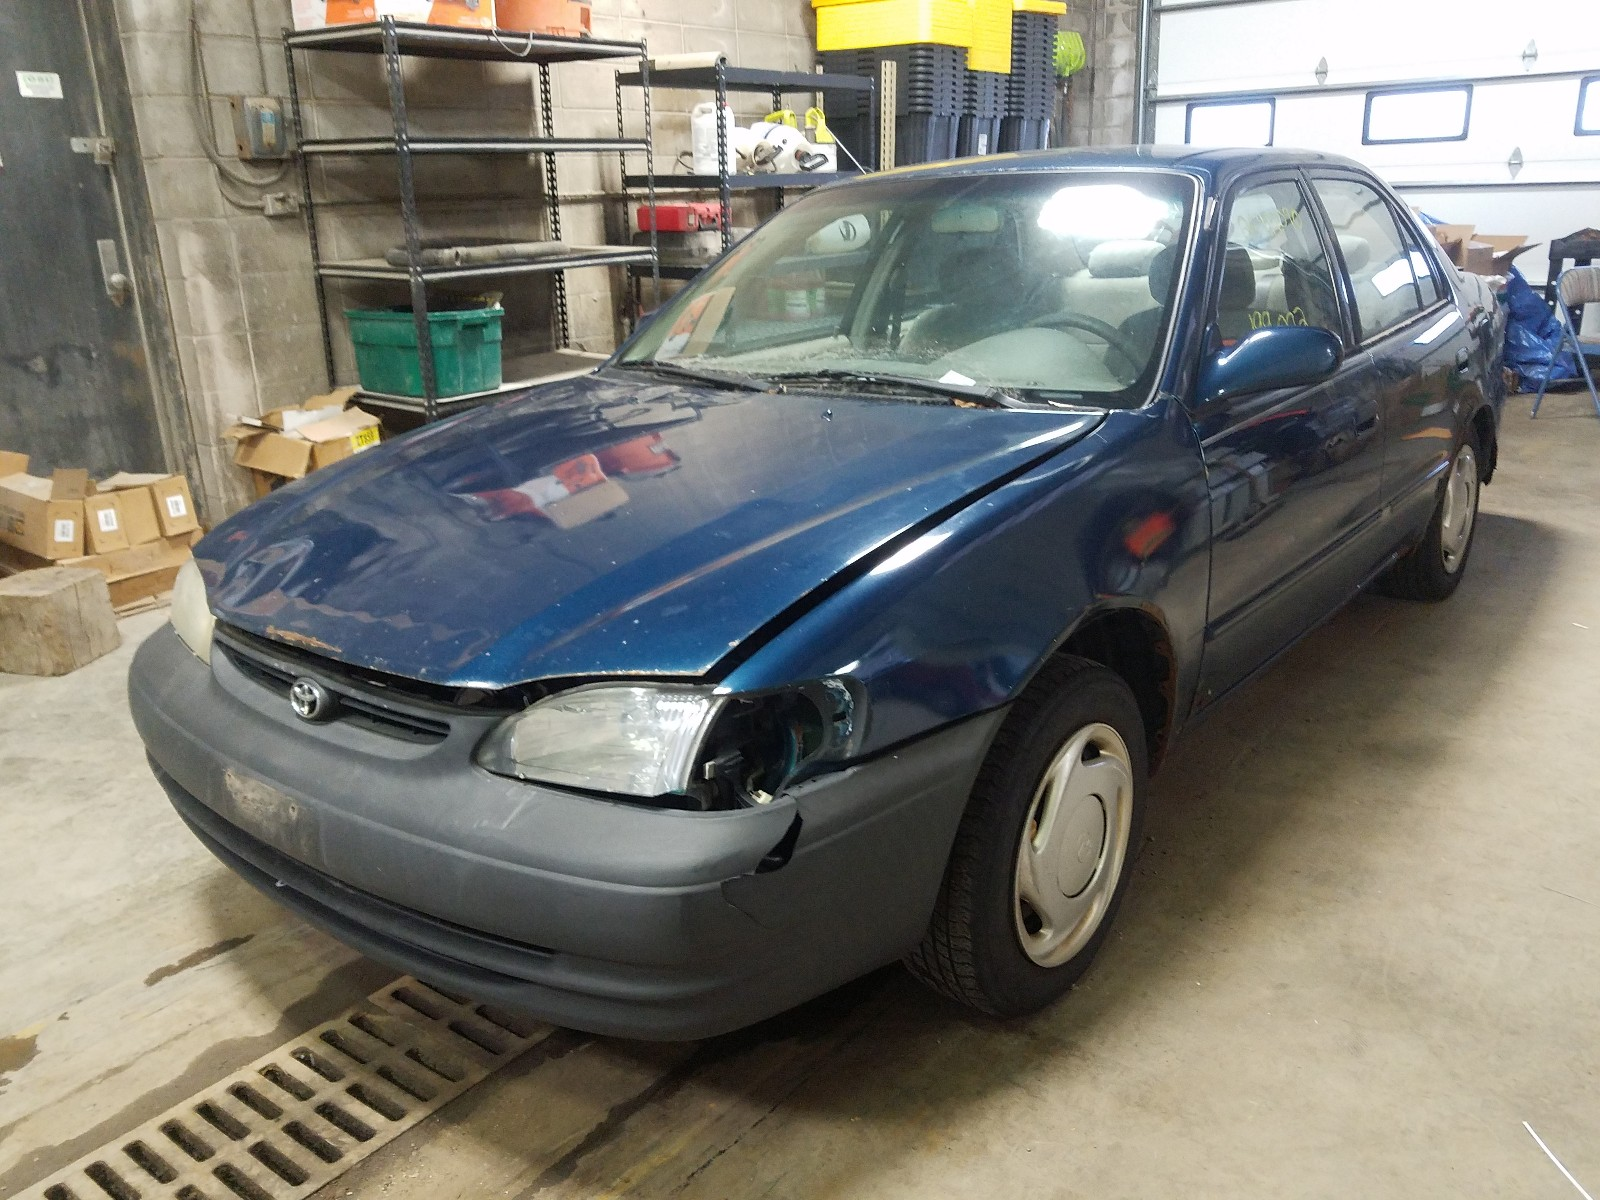 1NXBR18E7WZ129256 - 1998 Toyota Corolla Ve 1.8L Right View